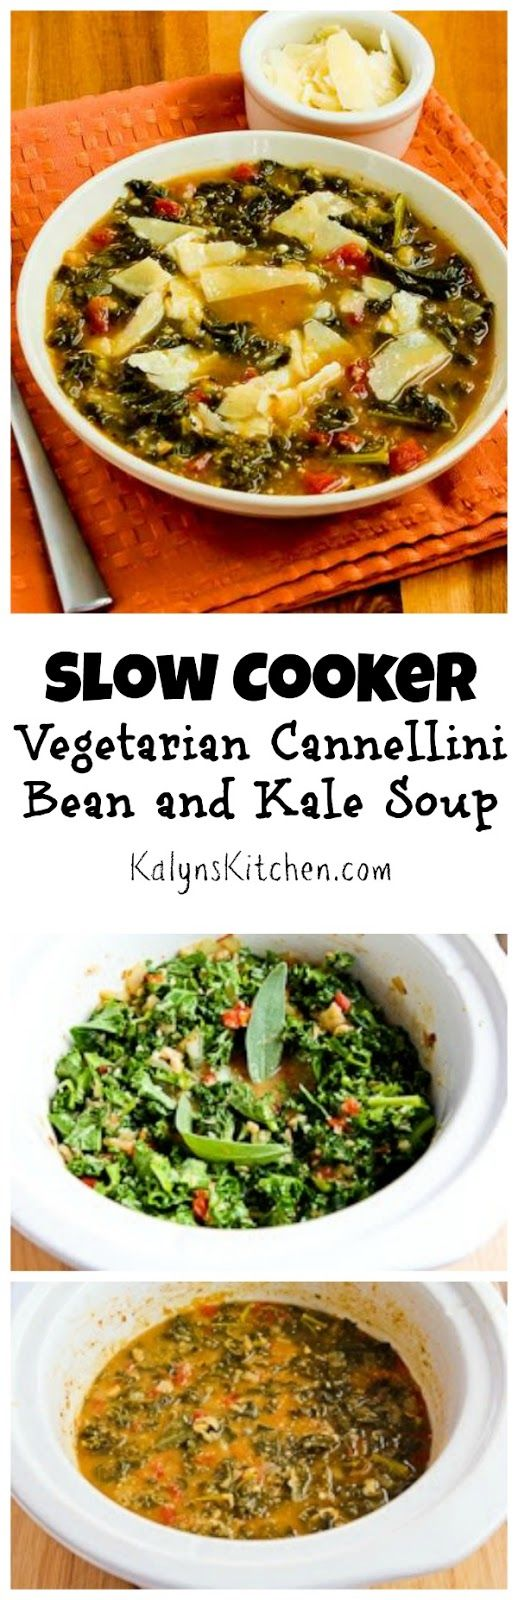 It may not look too glamorous, but this Slow Cooker Vegetarian Cannellini Bean and Kale Soup with Shaved Parmesan is one of my favorite slow cooker soups. DO NOT miss the shaved Parmesan!  (Can Freeze, Meatless Monday) [from KalynsKitchen.com]